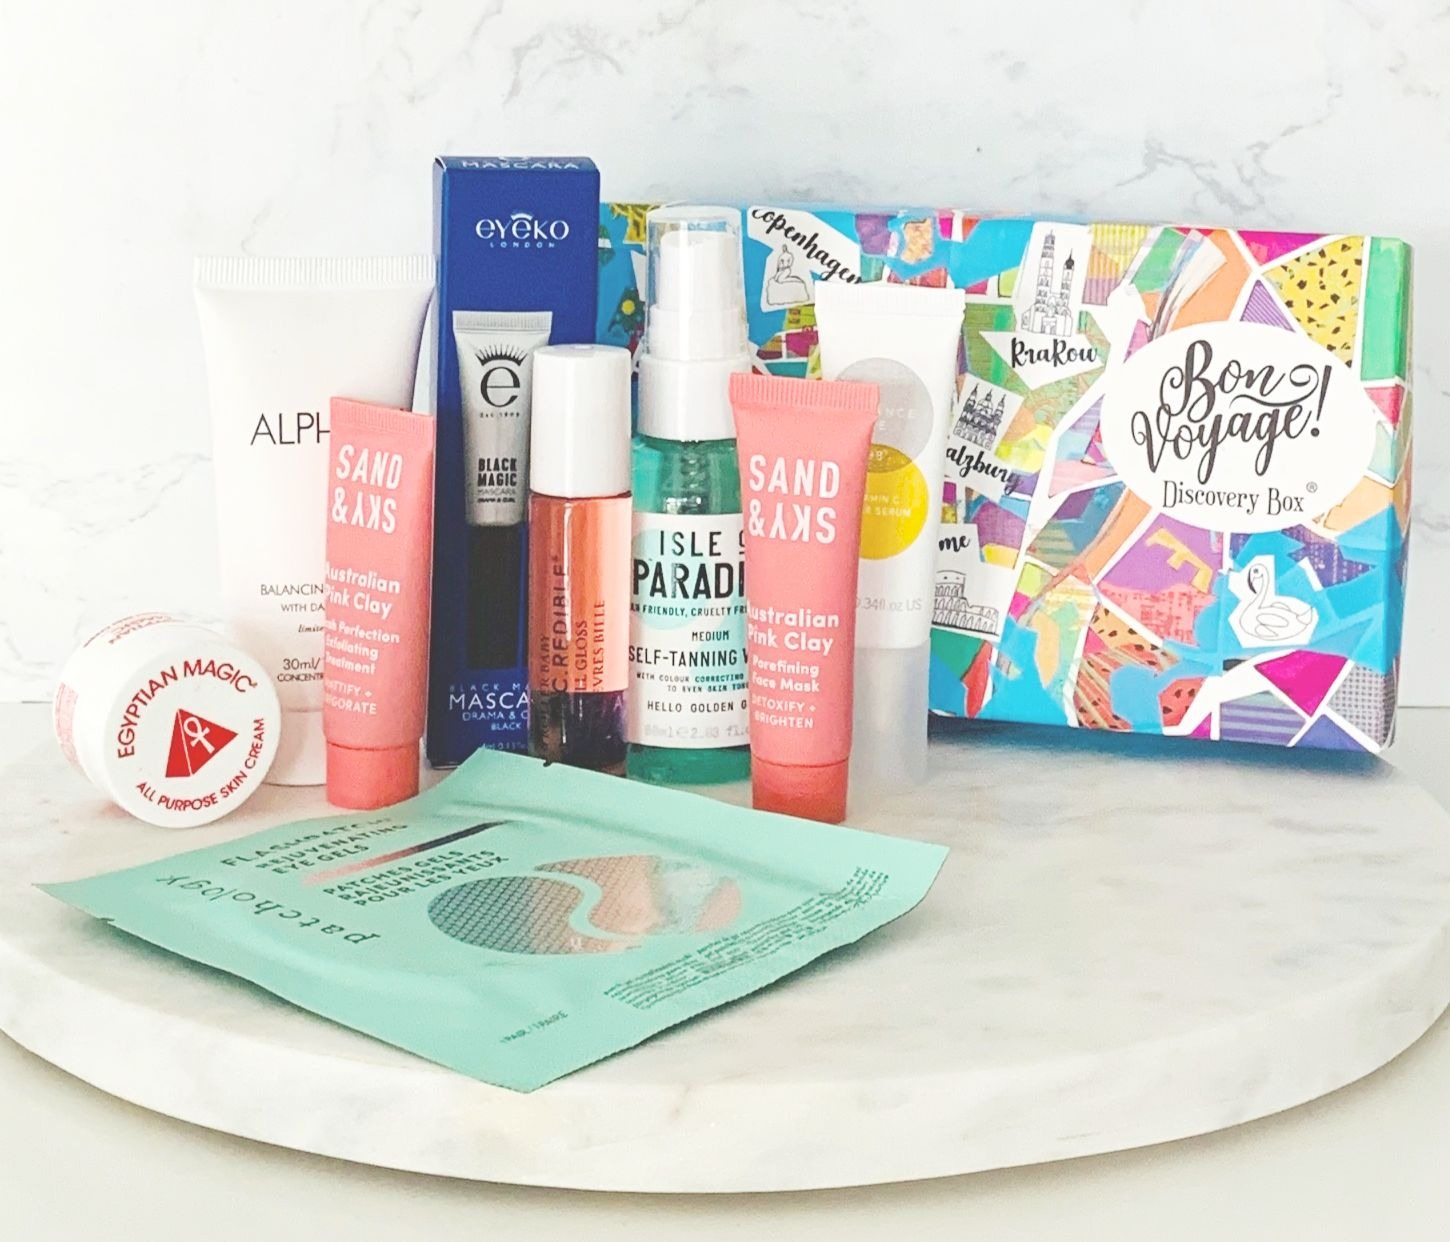 Bon Voyage Discovery Box, Beauty Boat Review